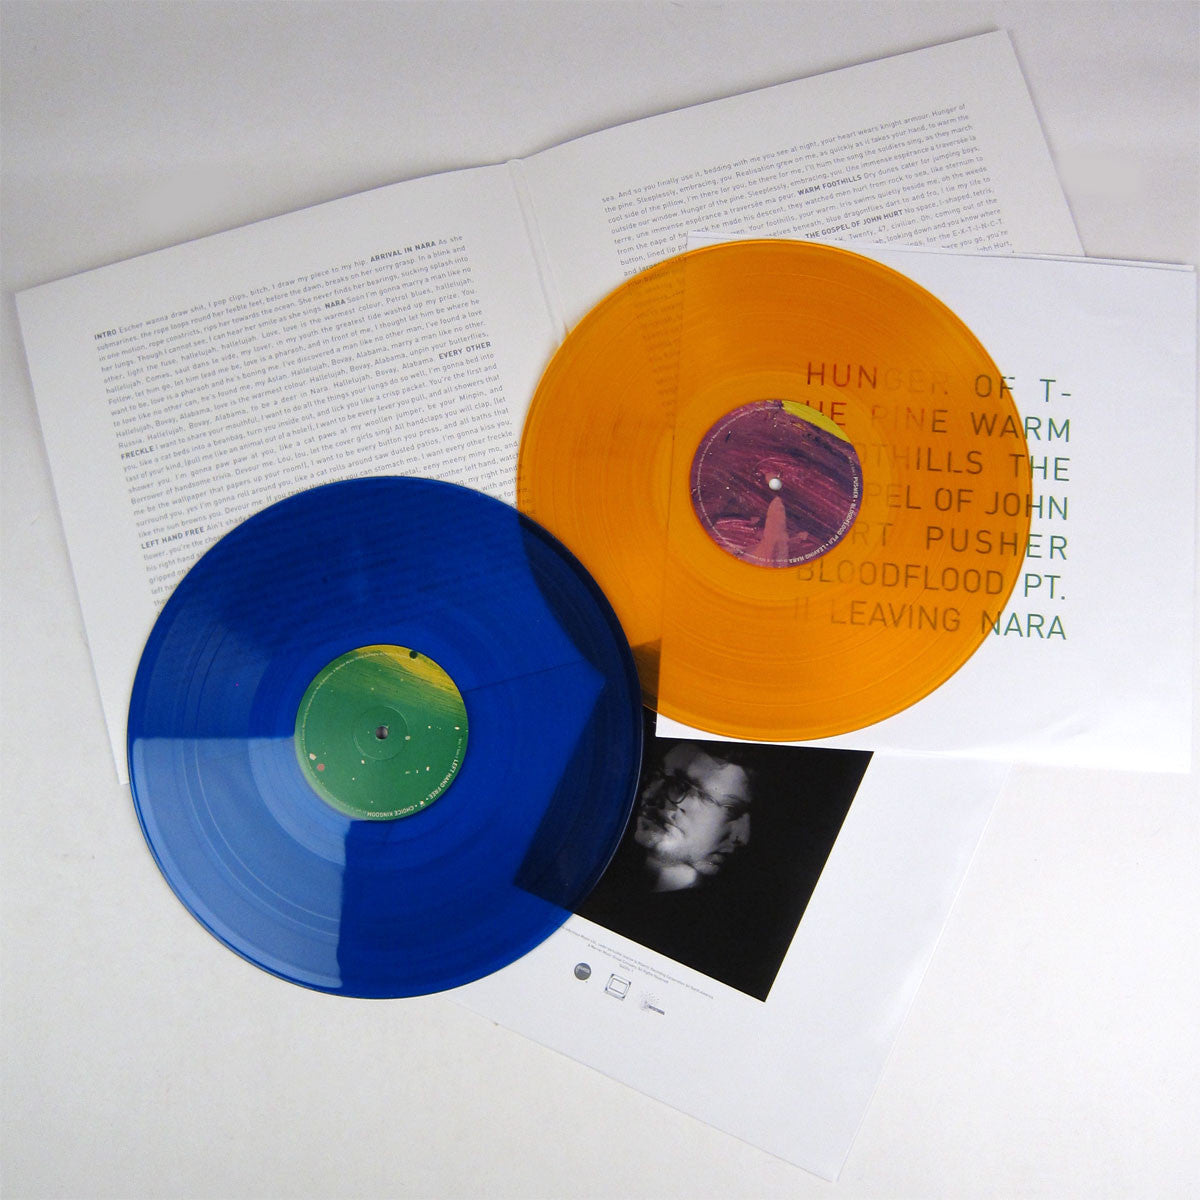 Alt-J: This Is All Yours (Colored Vinyl, Free MP3) Vinyl 2LP detail